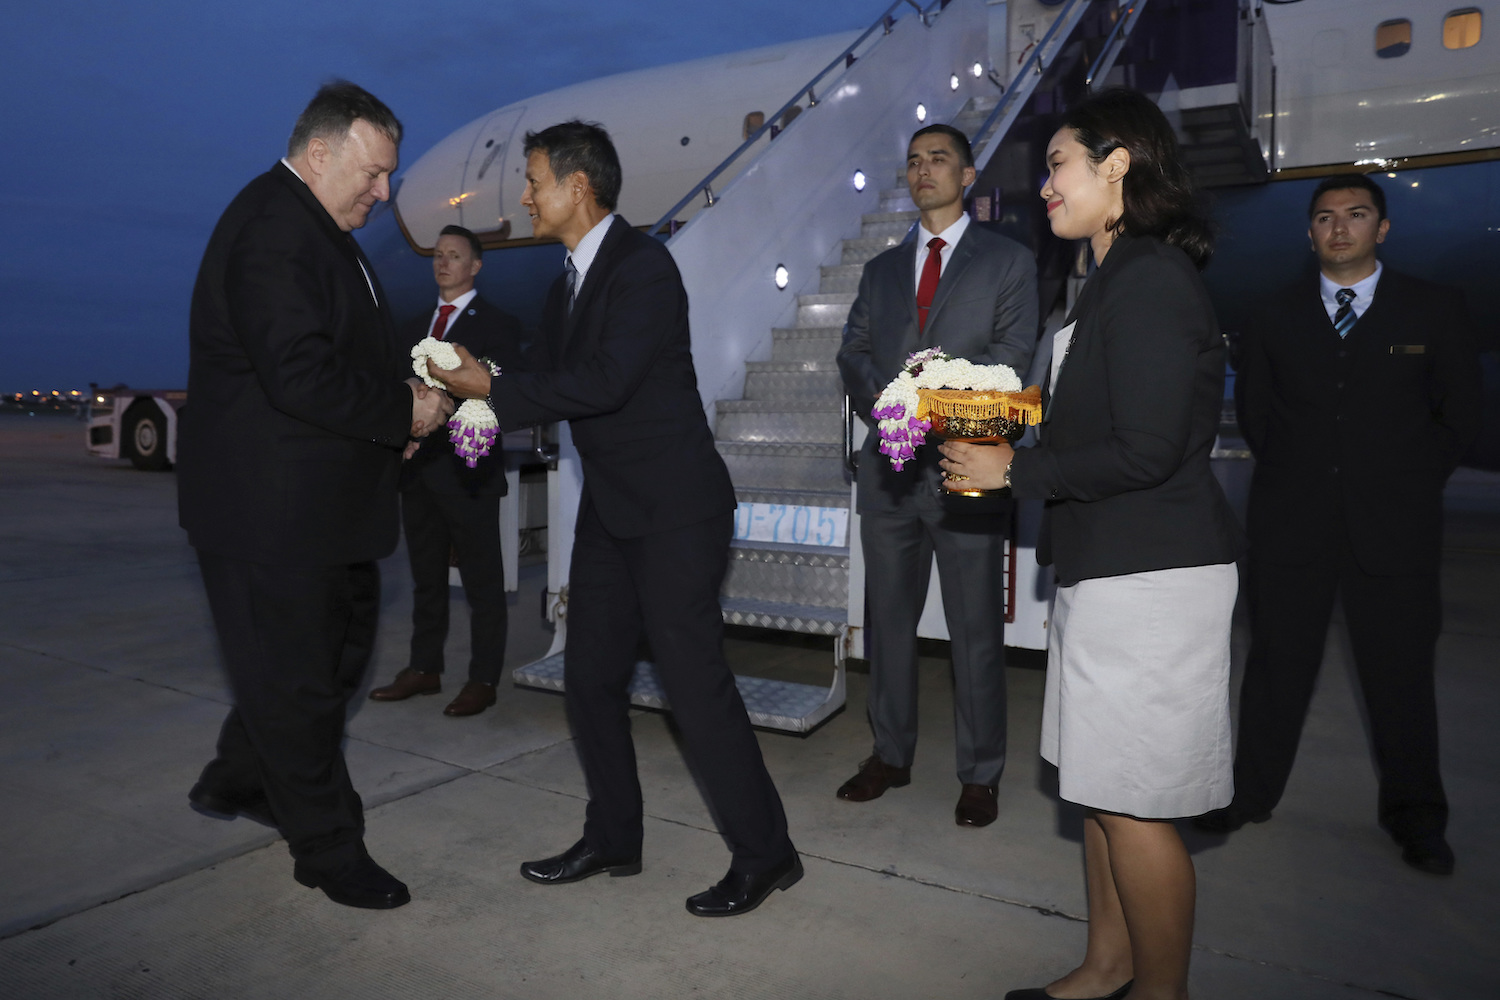 US Secretary of State Mike Pompeo is presented with flowers as he boards his plane to depart for Australia from Don Mueang airport on Saturday. (AP photo)